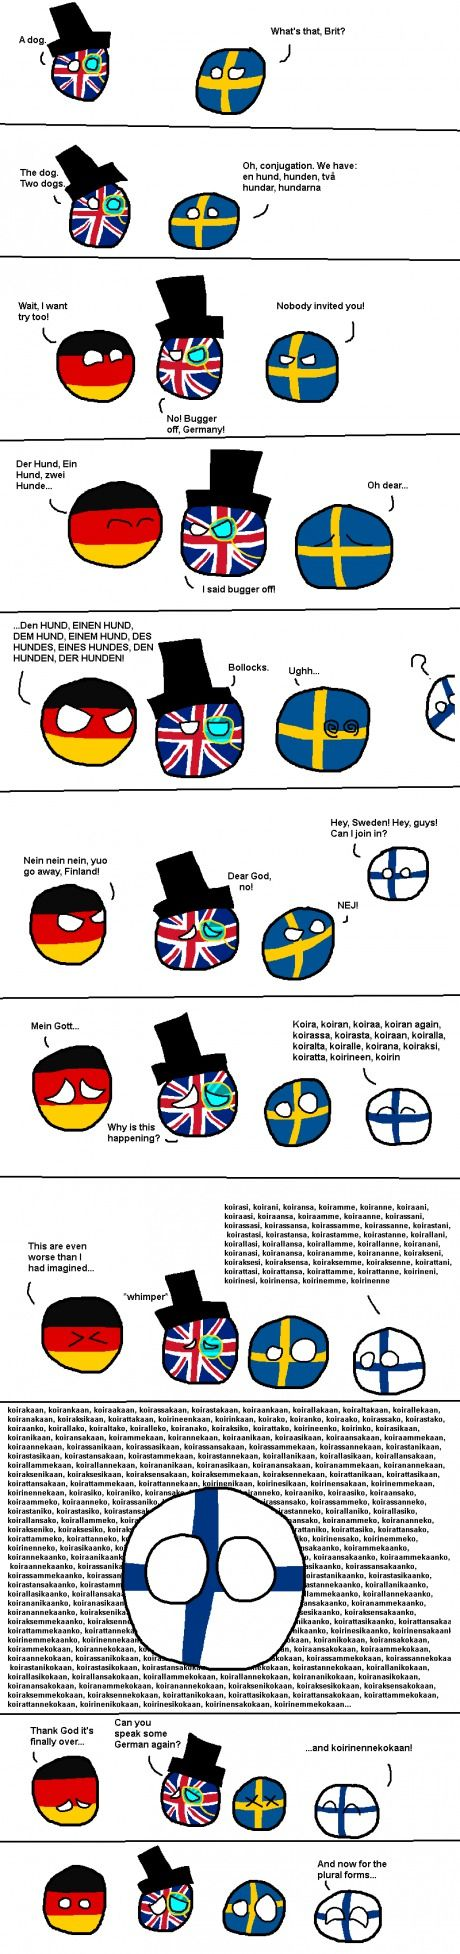 Finnish is terrifying and amazing at the same time.